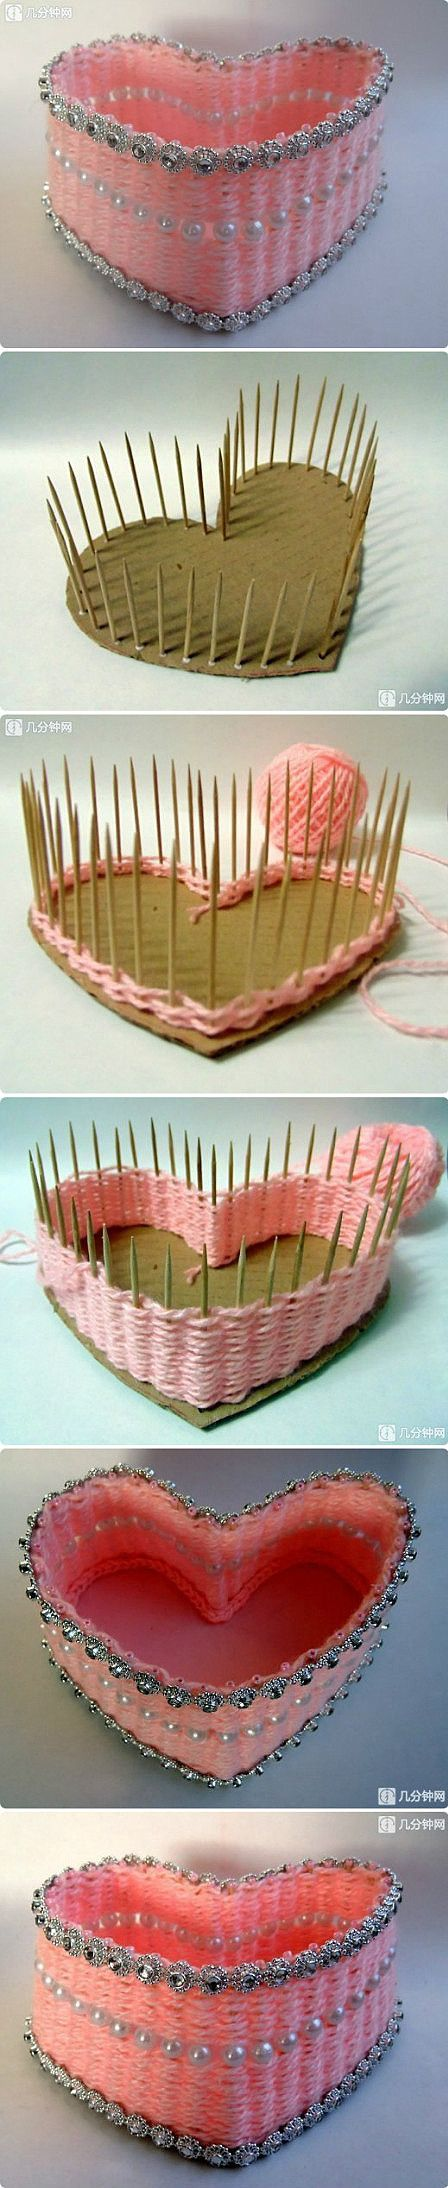 Make a Lovely Heart Box. No directions so we'll have to figure this out on our own. No problem. The pictures pretty much explain it all. Just have fun with this!